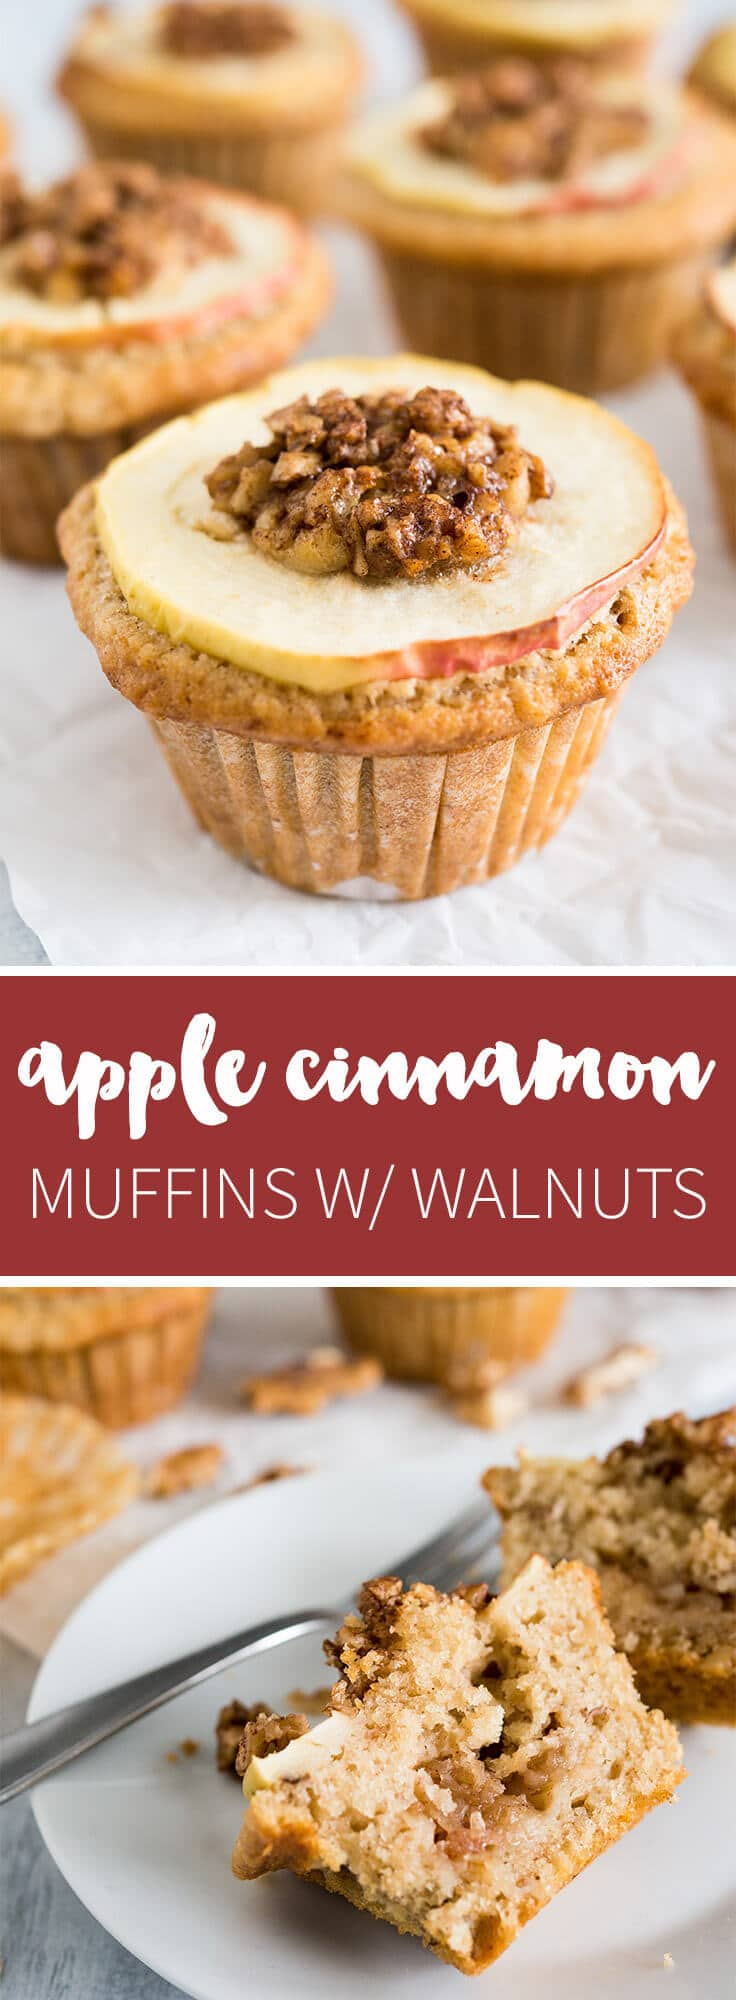 Apple Cinnamon Muffins are made with brown butter and topped with caramelized walnuts! They have a secret filling which makes them extra moist and delicious.